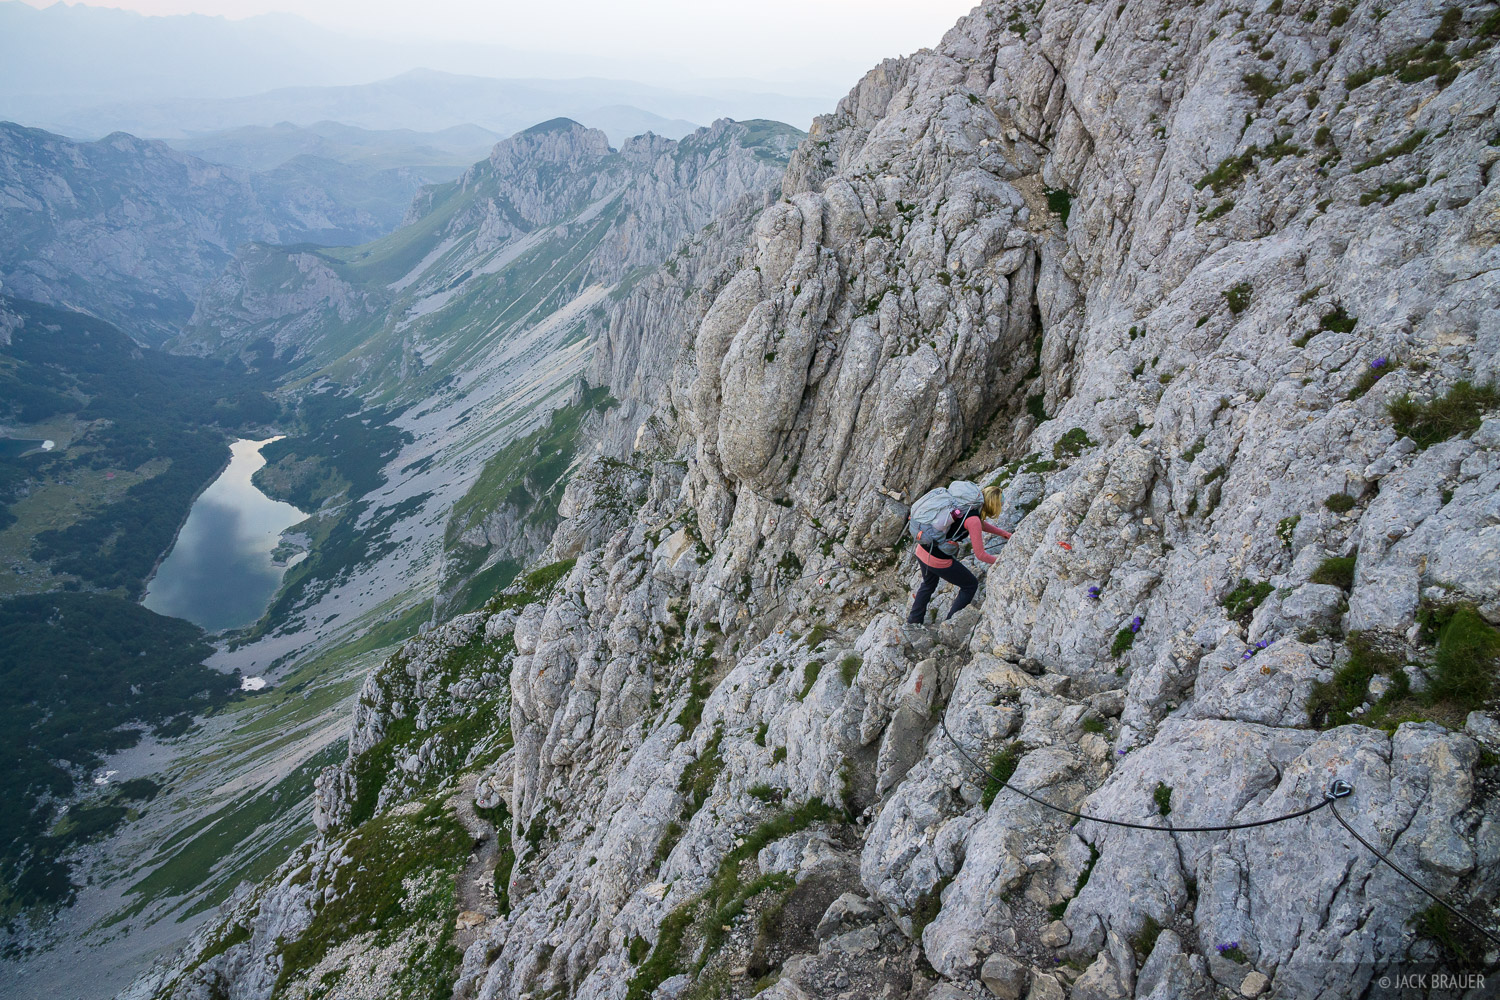 Climbing to the summit of Bobotov Kuk via the scrambly cabled route.